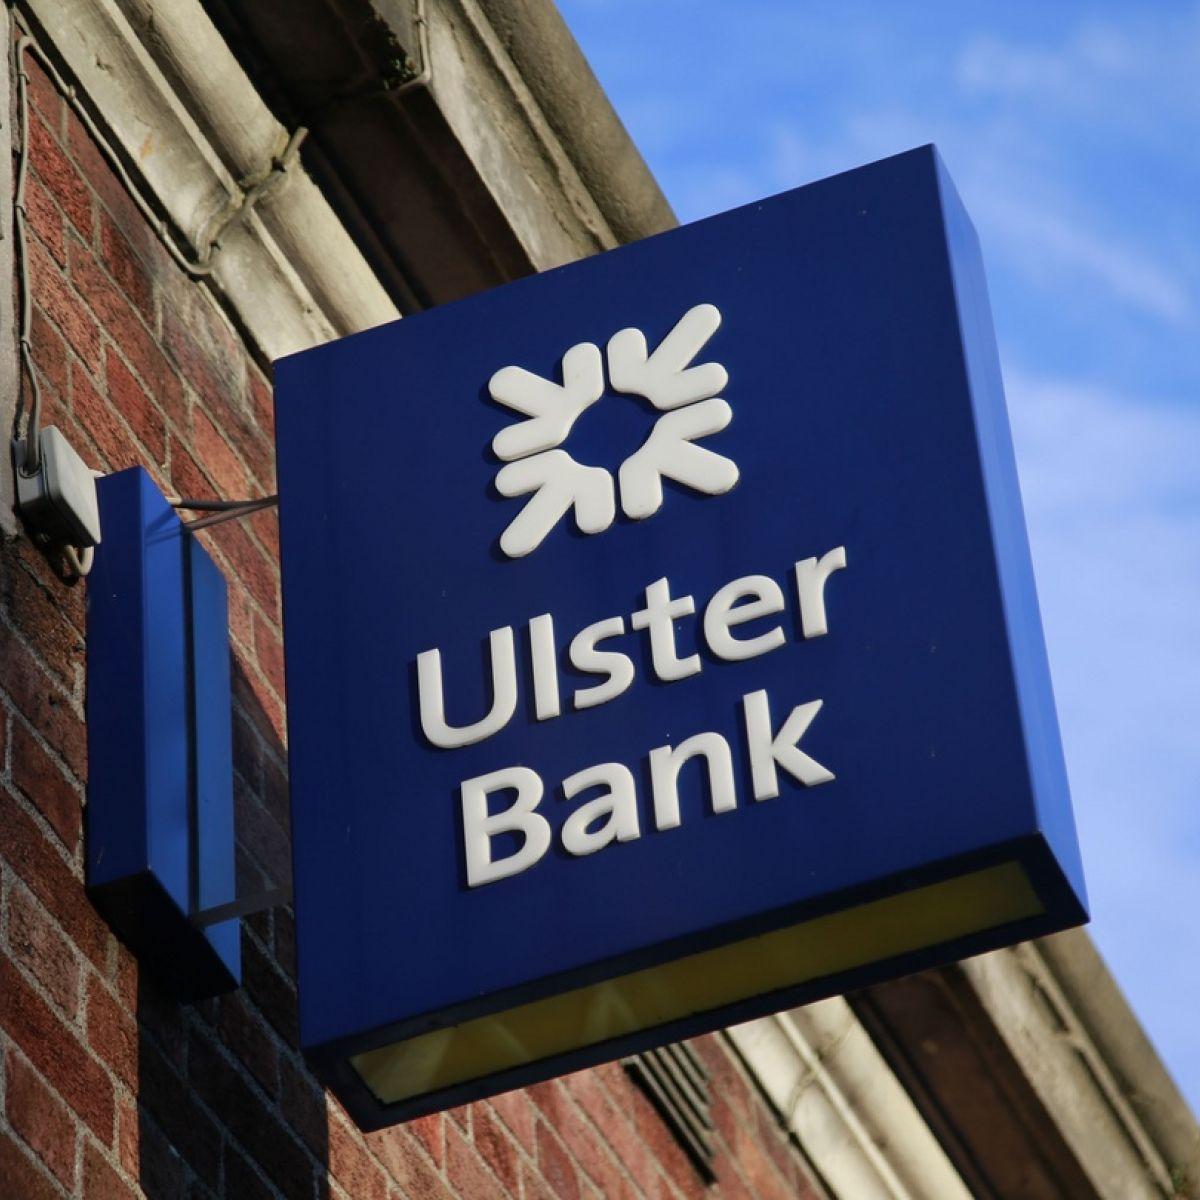 Ulster Bank may sell more loans to reach EU bad-debt average by 2020